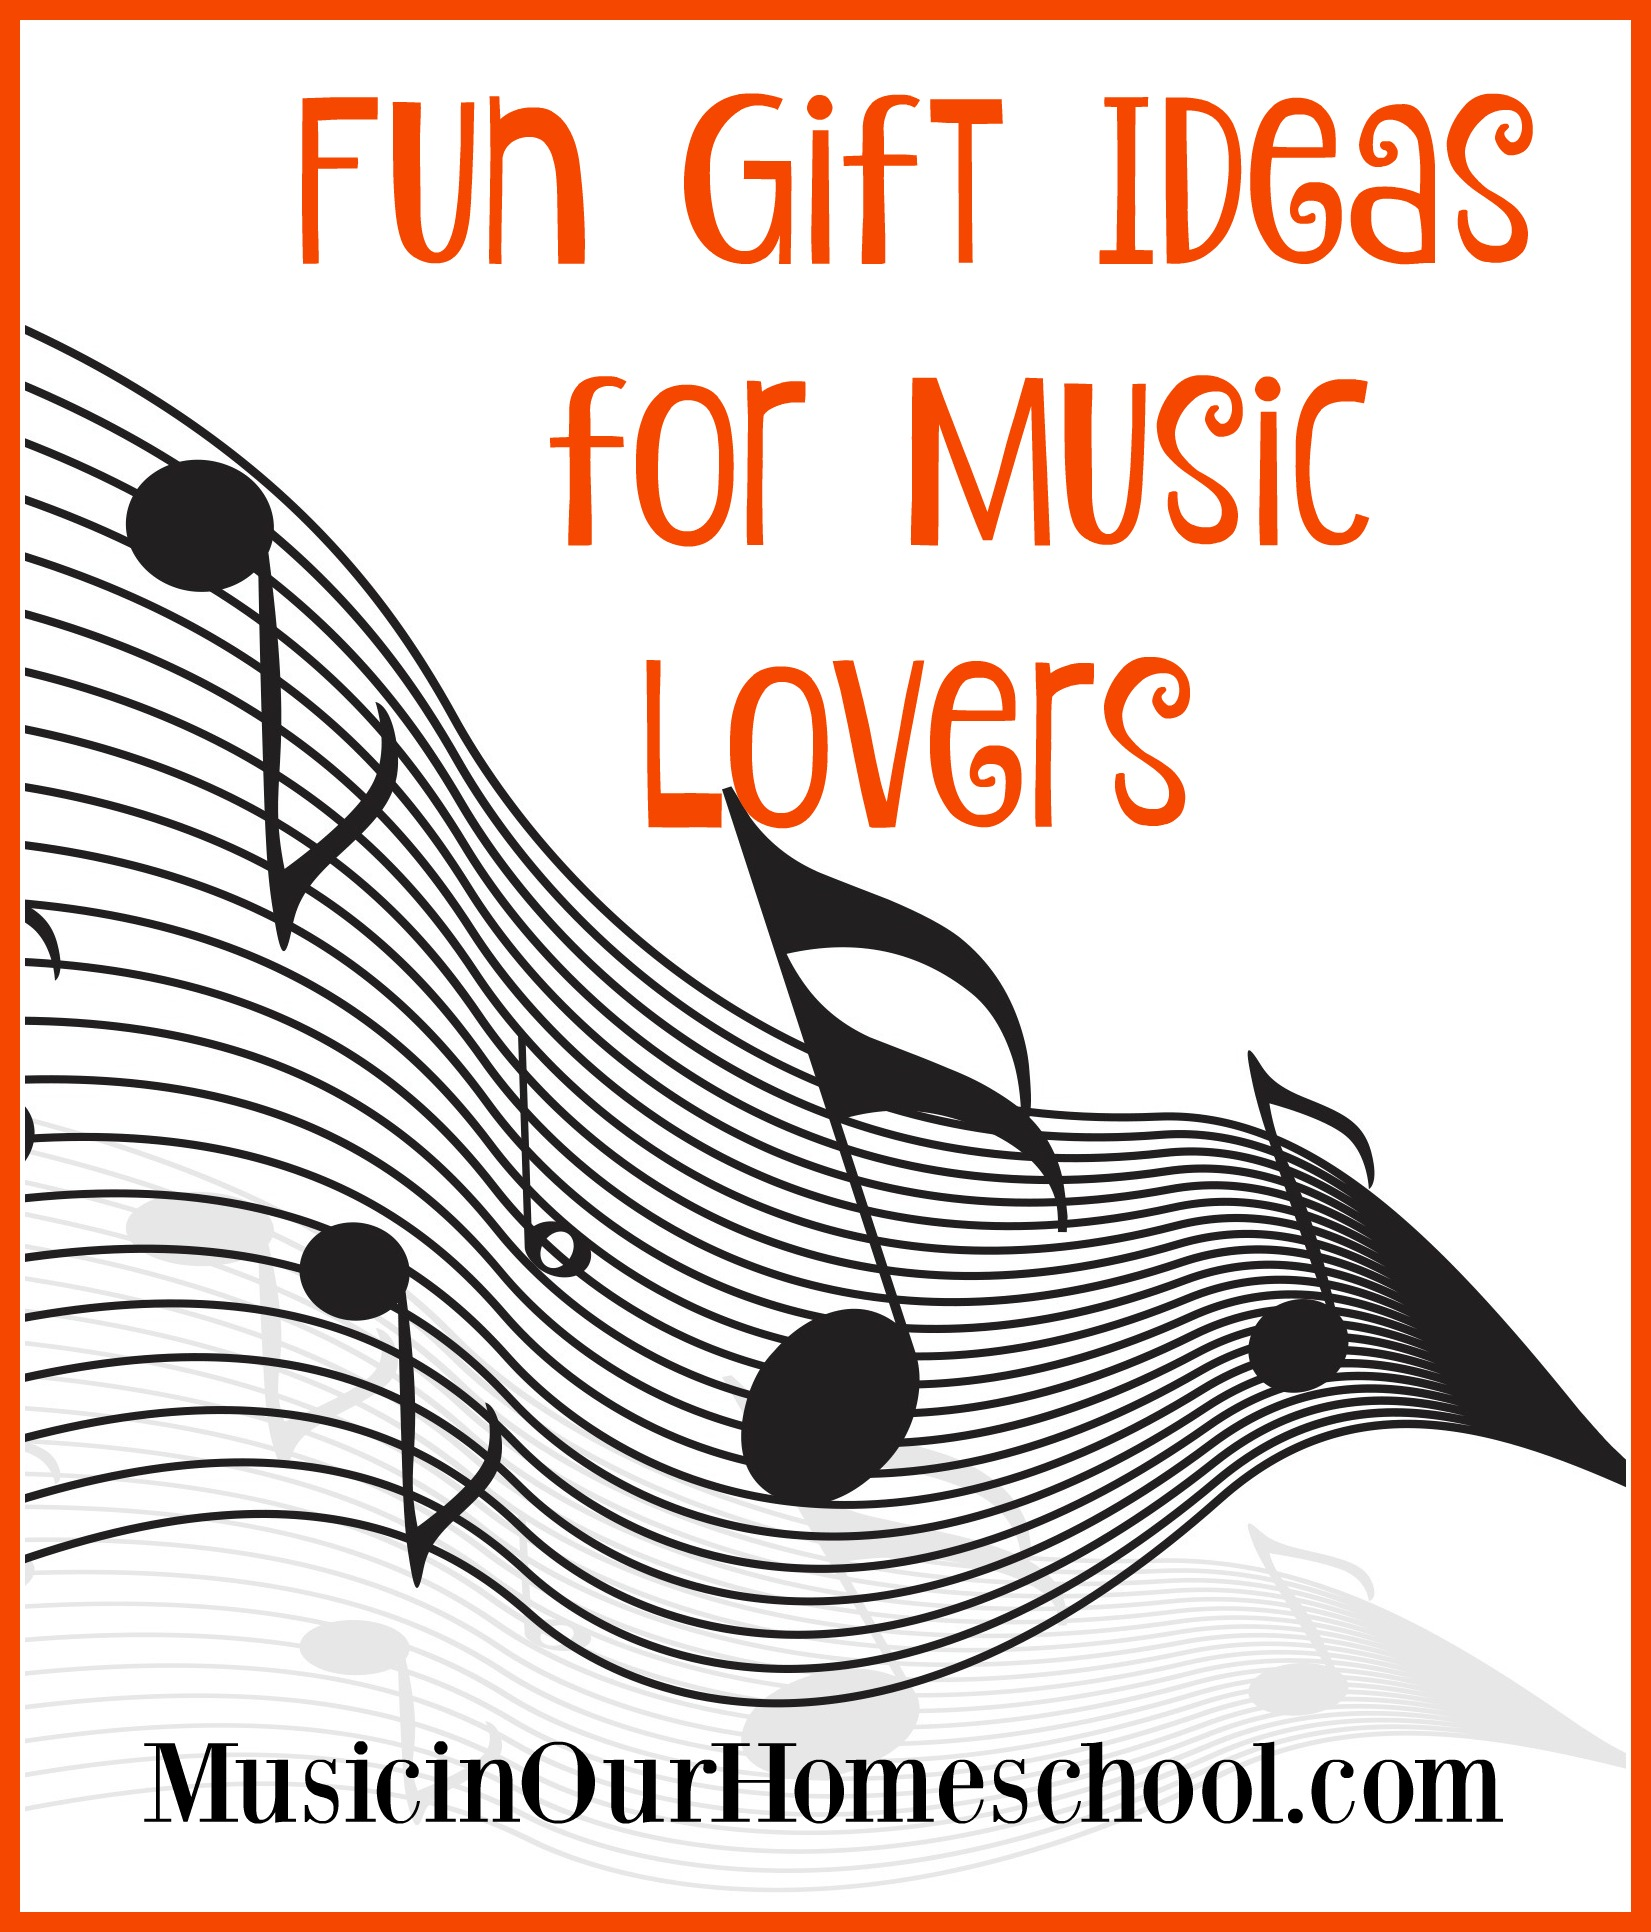 Fun gift ideas for music lovers music in our homeschool - Interesting home decor ideas for music lovers ...